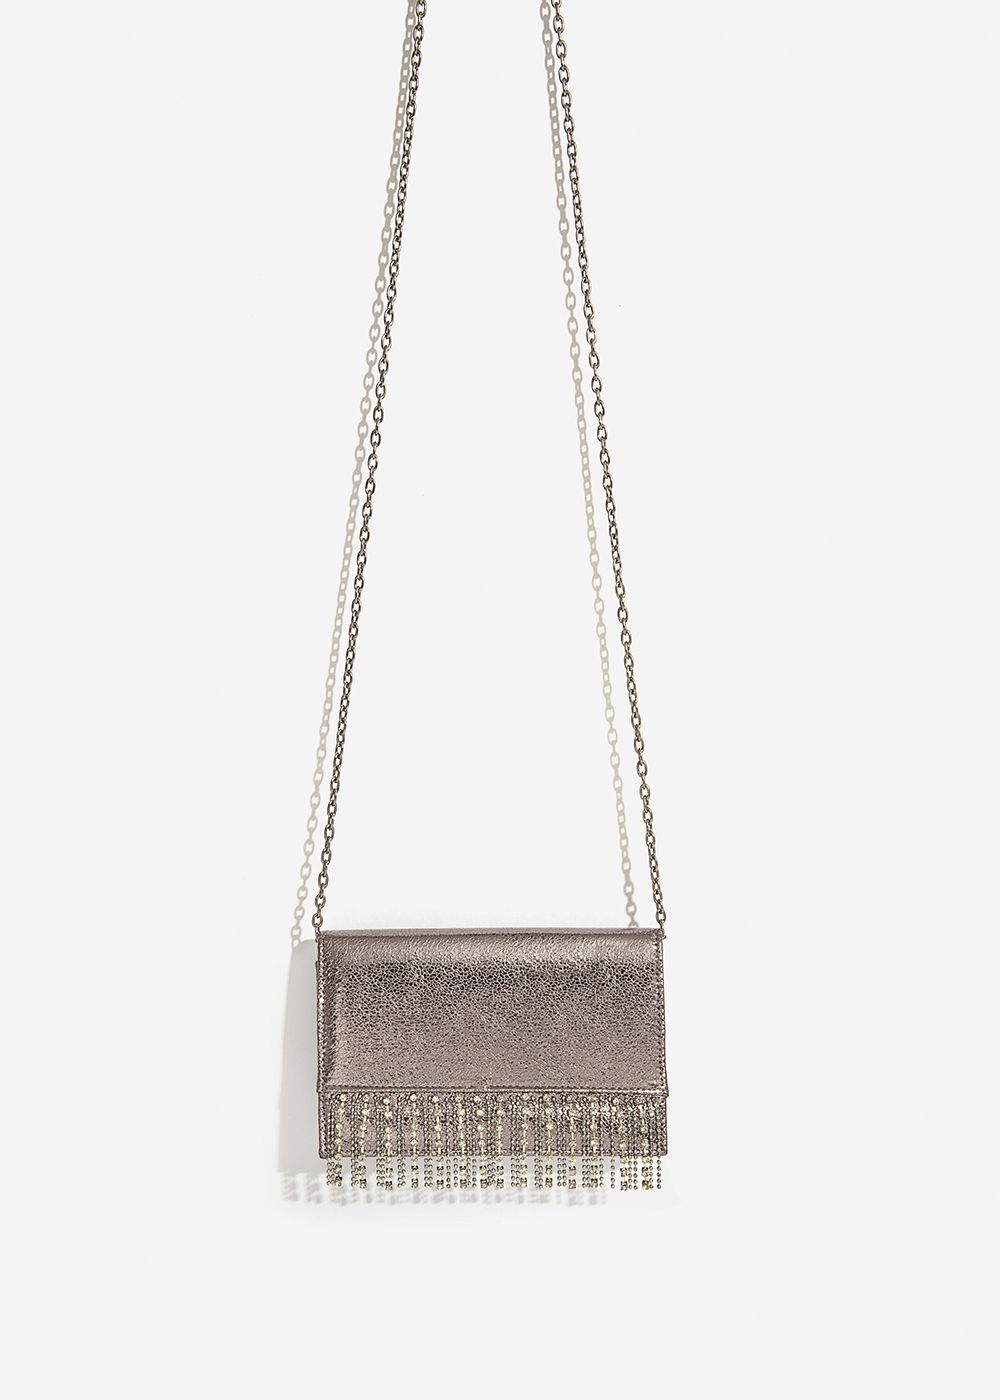 CLUTCH METALLICA ARGENTO SCURO  CON STRASS